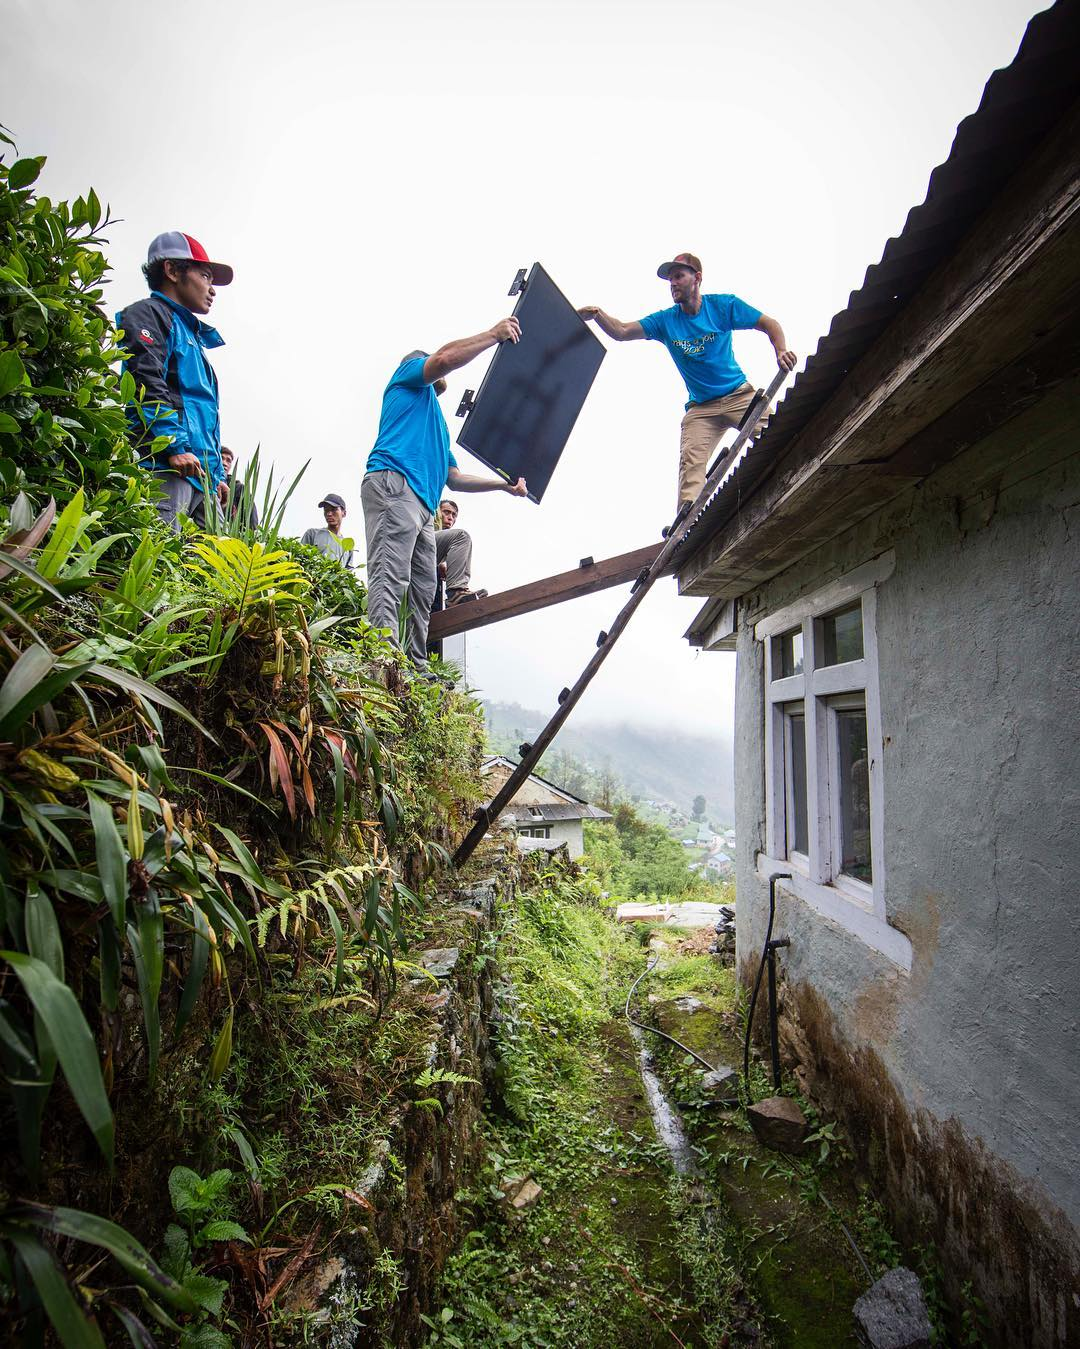 The grid here in KaraKhola, Nepal isn't always dependable. Installing solar panels and lights at the rural medical clinic will create a safer environment for those being treated here. If the power goes out in the middle of childbirth or a standard...